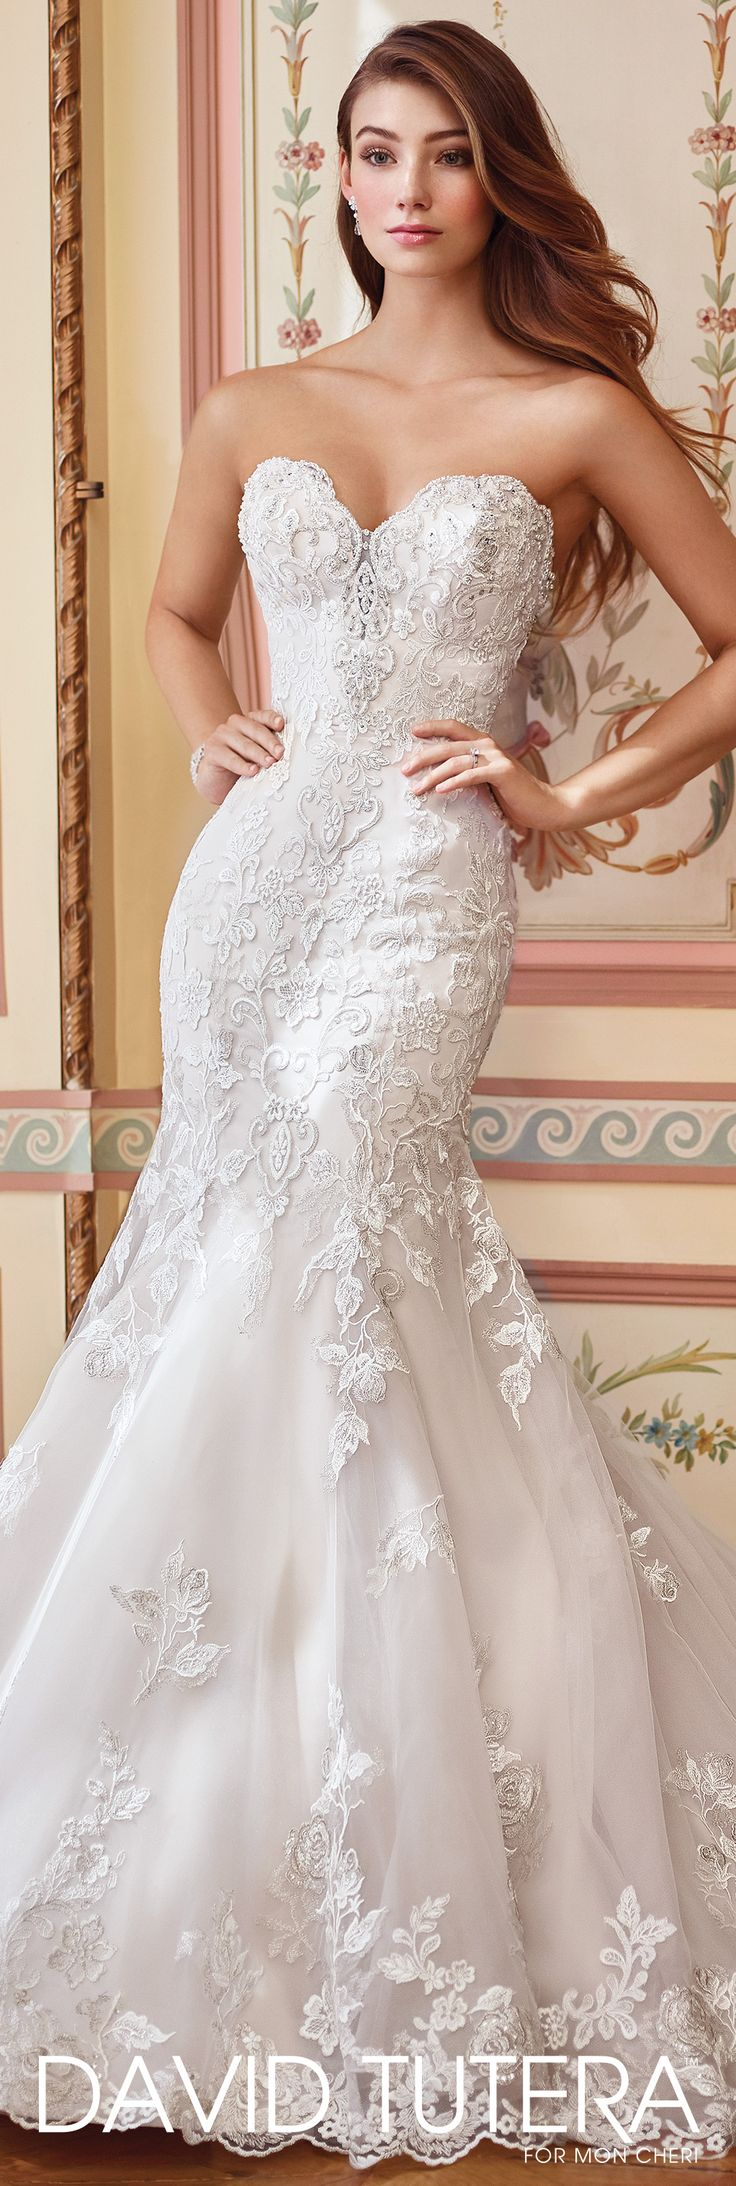 669 best images about david tutera for mon cheri on for No back wedding dress